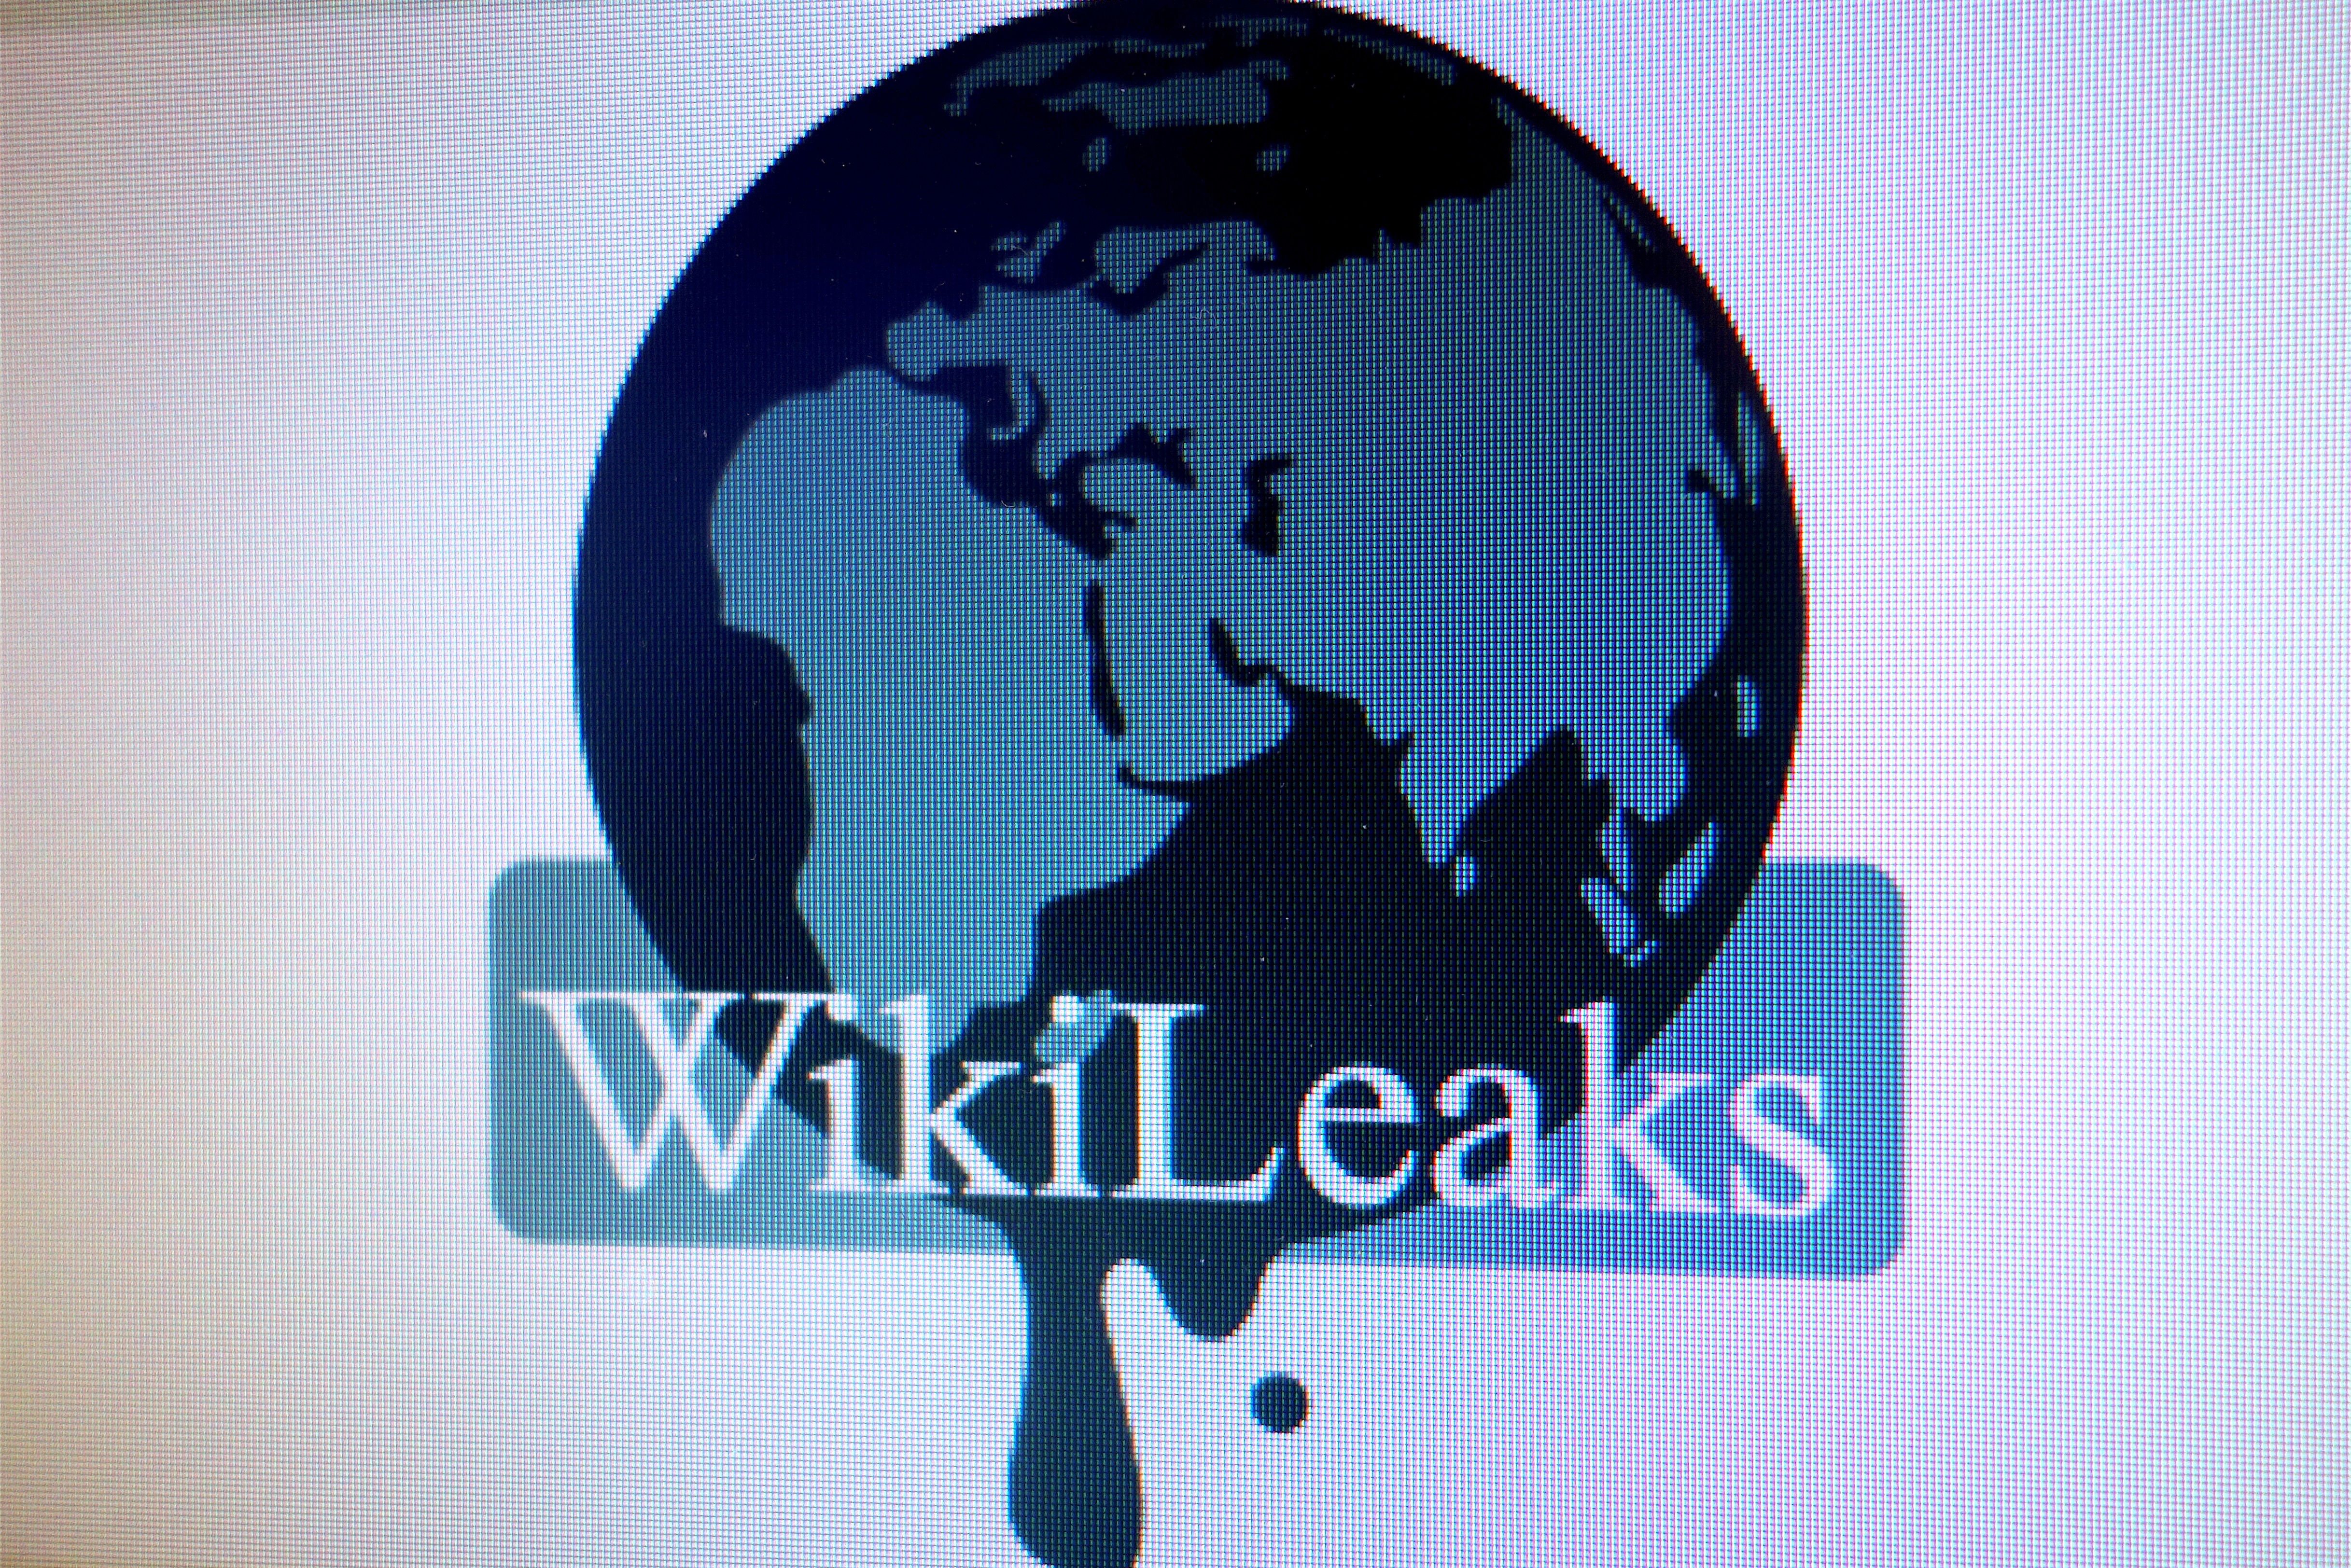 WikiLeaks plans share CIA hacking details, but can companies use it?